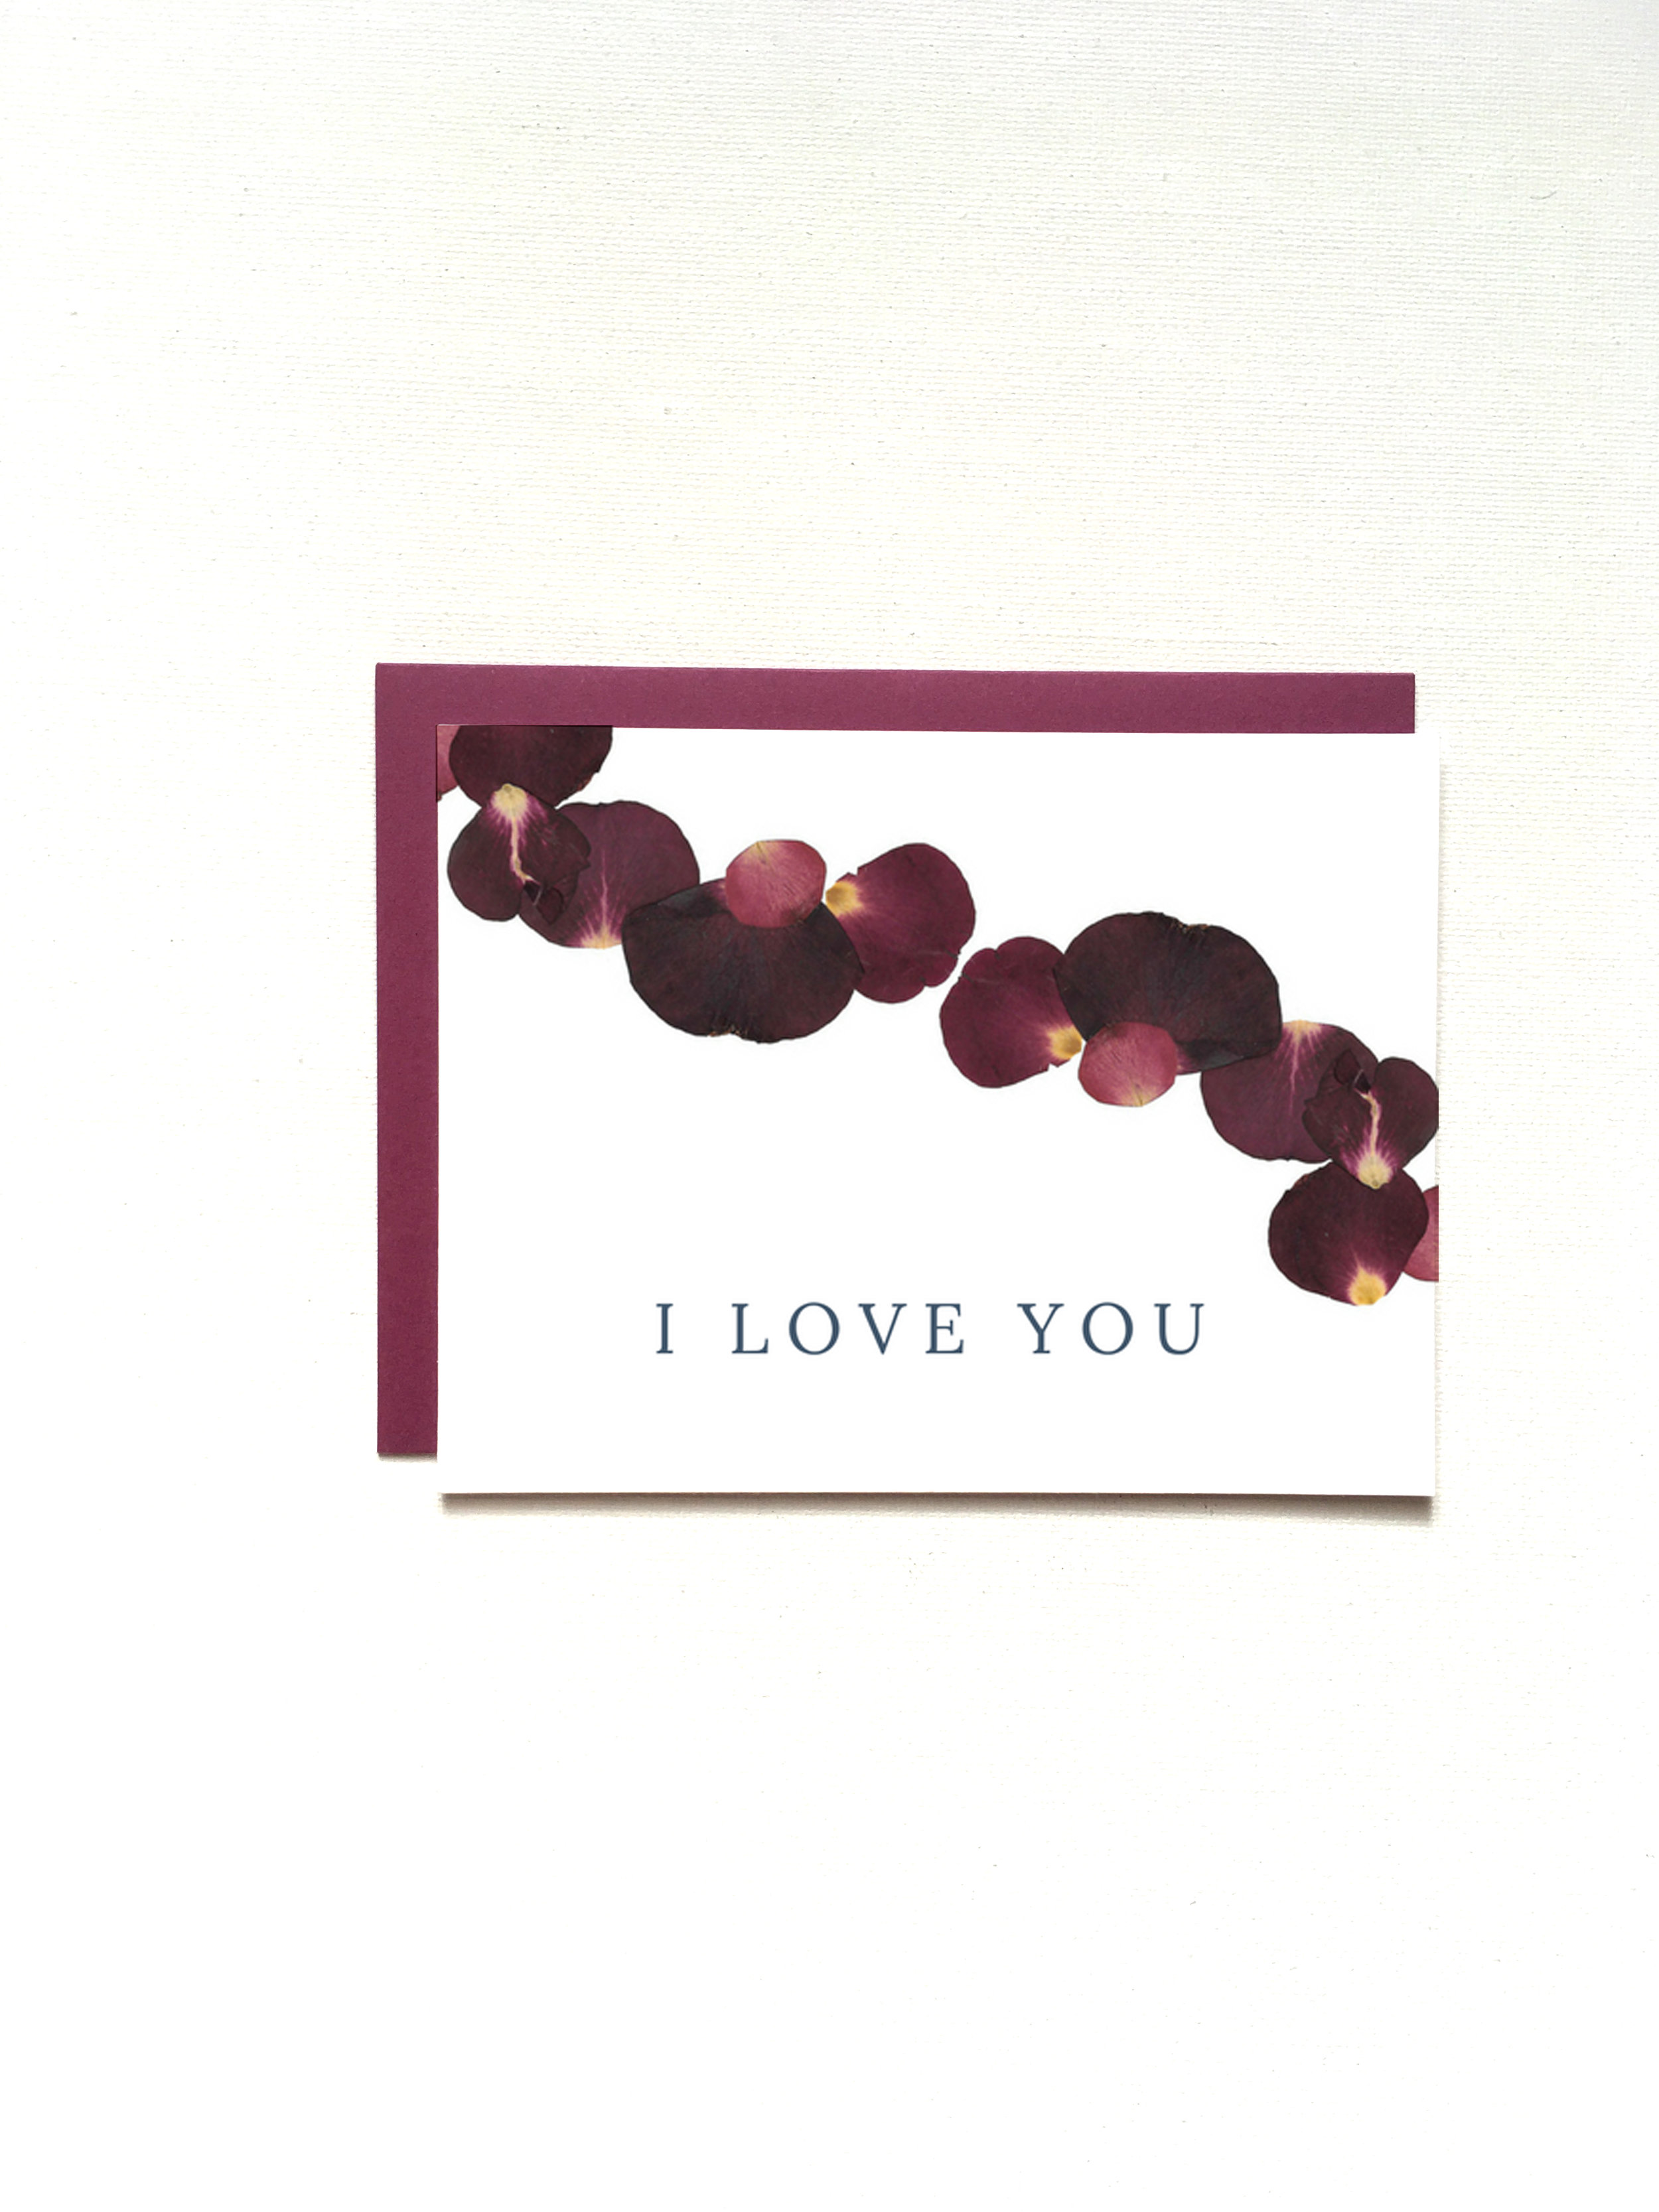 I Love You Pressed Petal Card by Raleigh Calligraphy